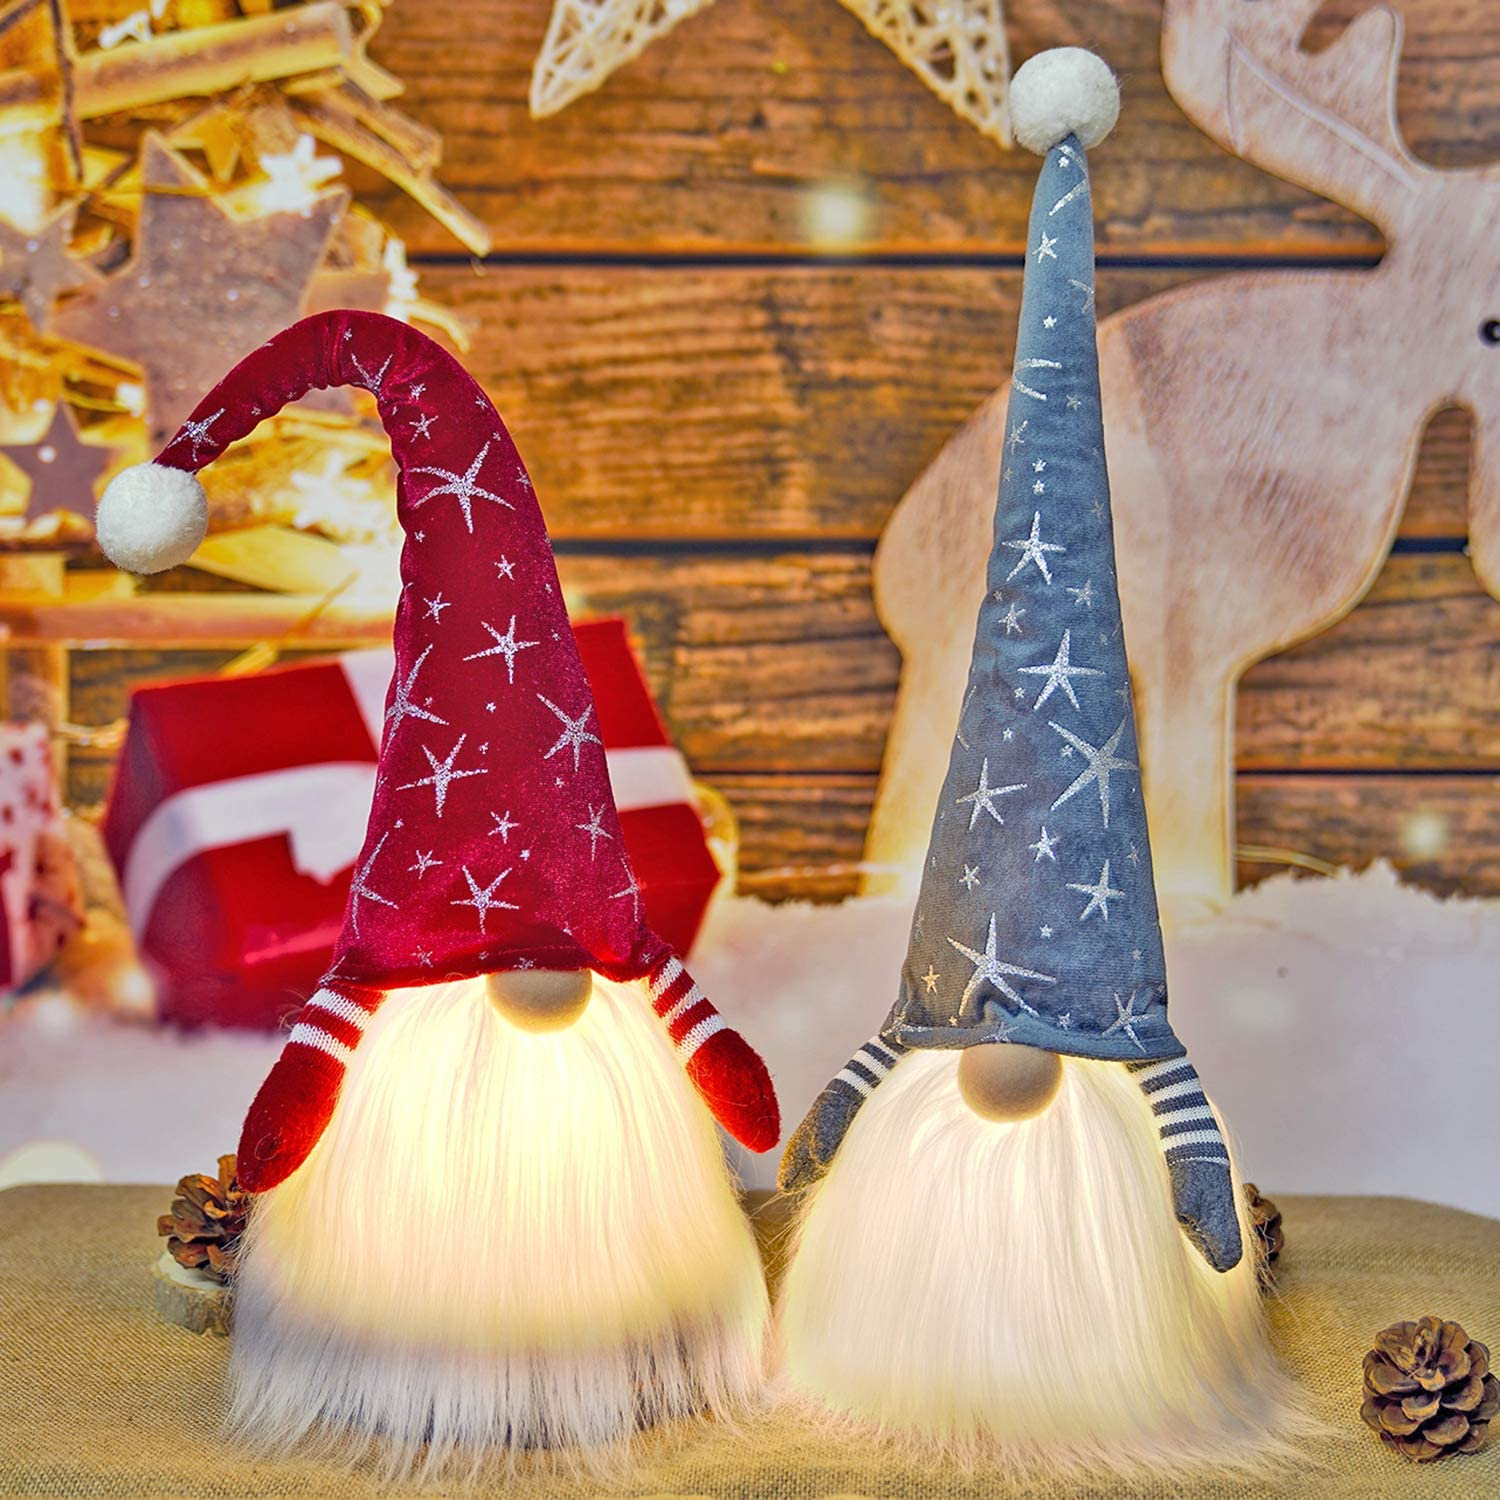 Gnome Christmas Decorations with Led Light, 2 Pack Handmade Swedish Tomte Gnomes, Scandinavian Santa Elf Plush Table Ornaments, Nordic Nisse Figurine Doll Holiday Party Decor Gift-Snowflake